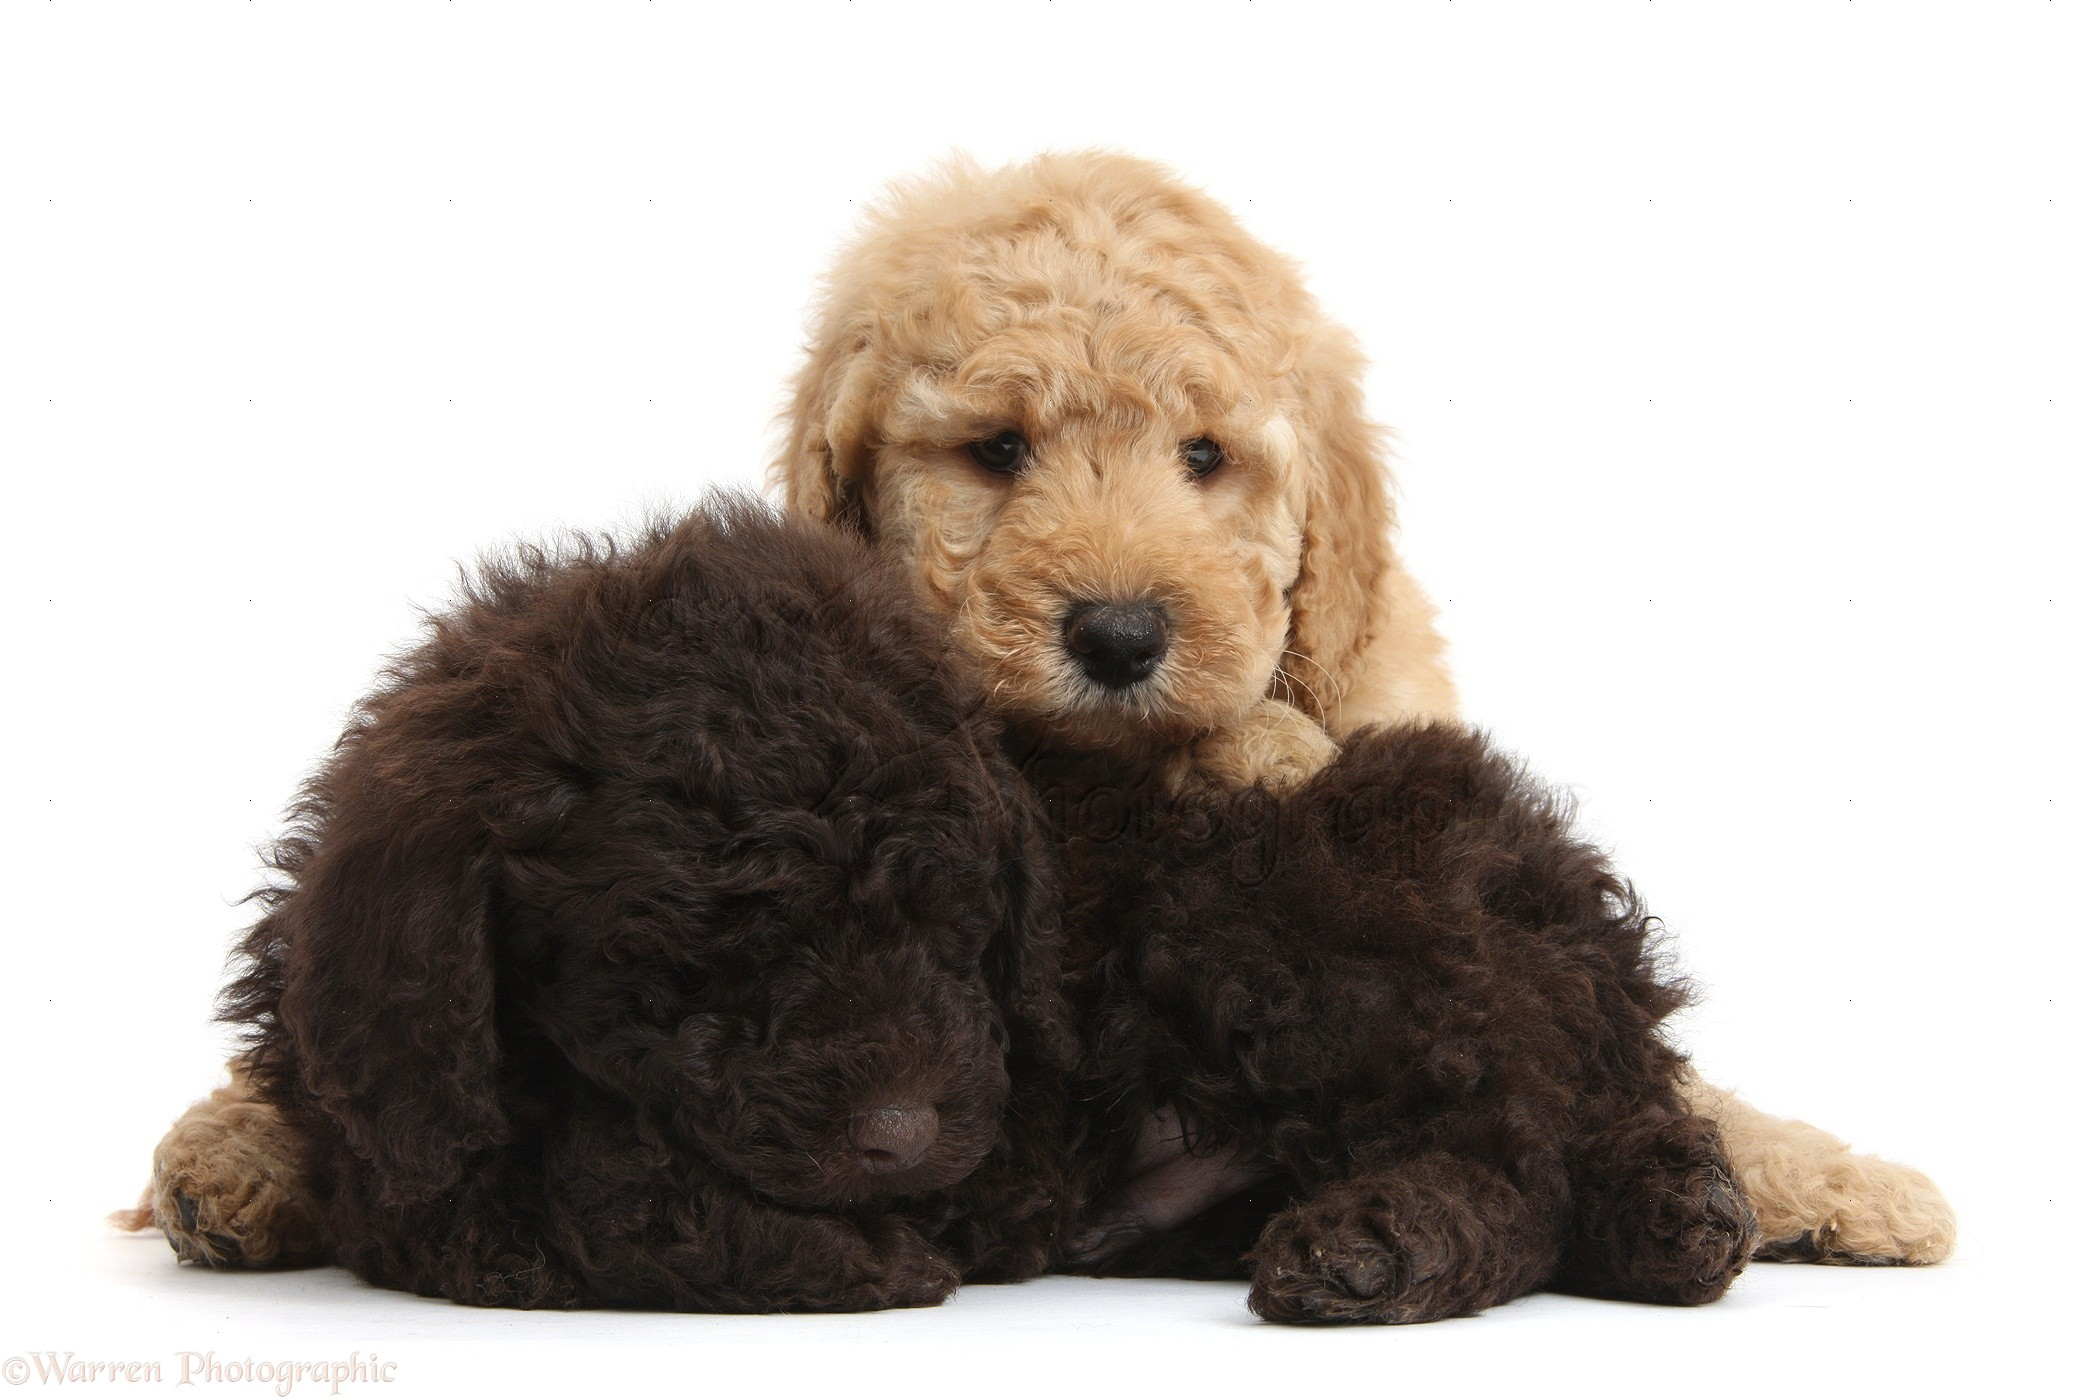 Dogs Cute Sleepy Toy Goldendoodle Puppies Photo Wp37784